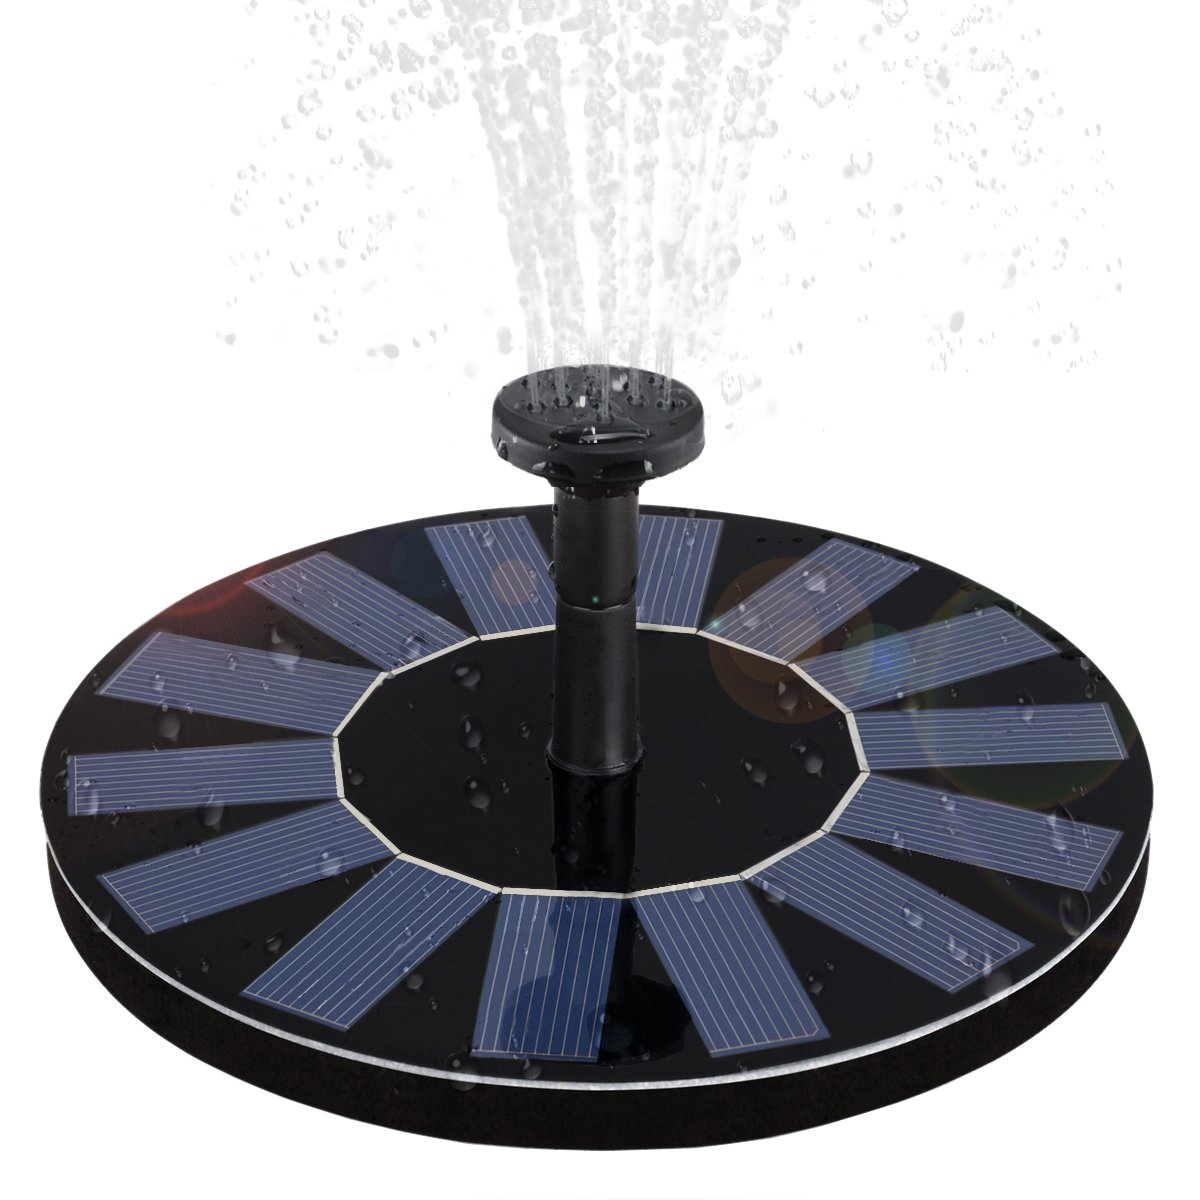 WBPINE Solar Fountain Pump, Solar Powered Floating Fountain Kit Solar Water Fountain Bird Bath Pond, Pool Garden Decoration by WBPINE